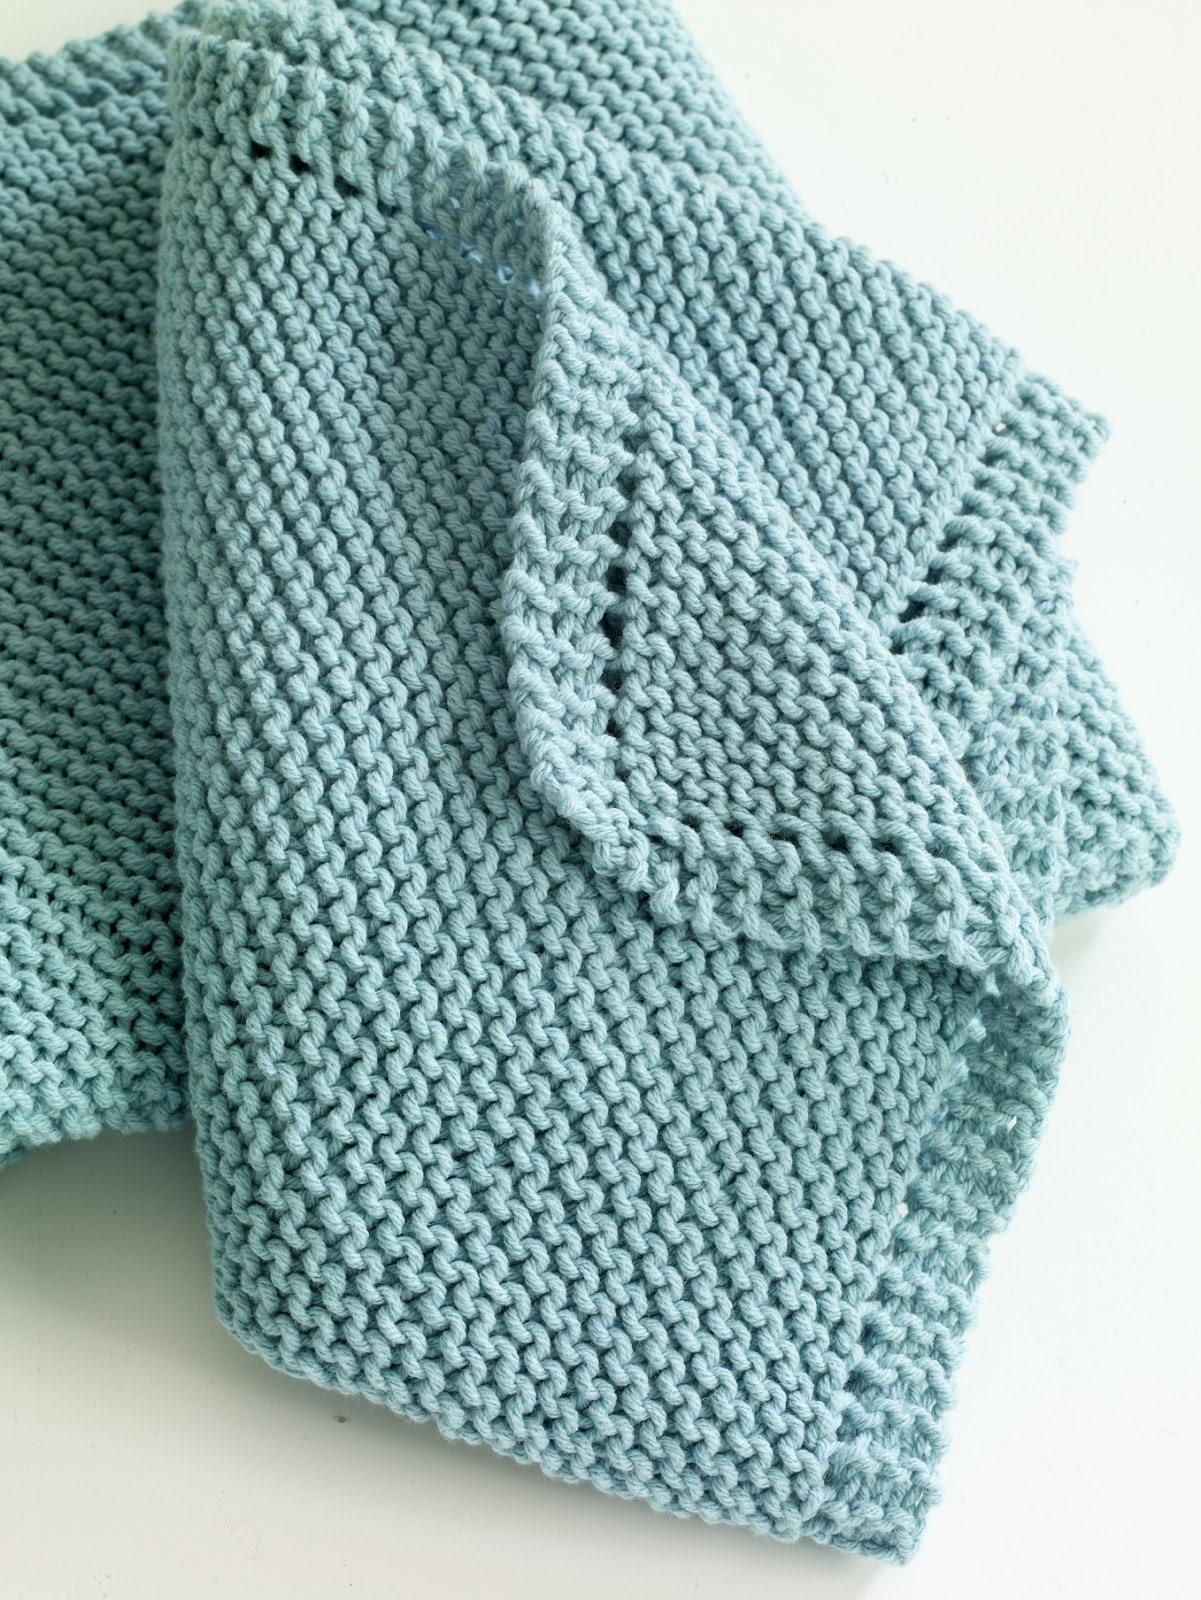 Knitted Blanket Patterns For Babies : Serenity Knits: December 2012